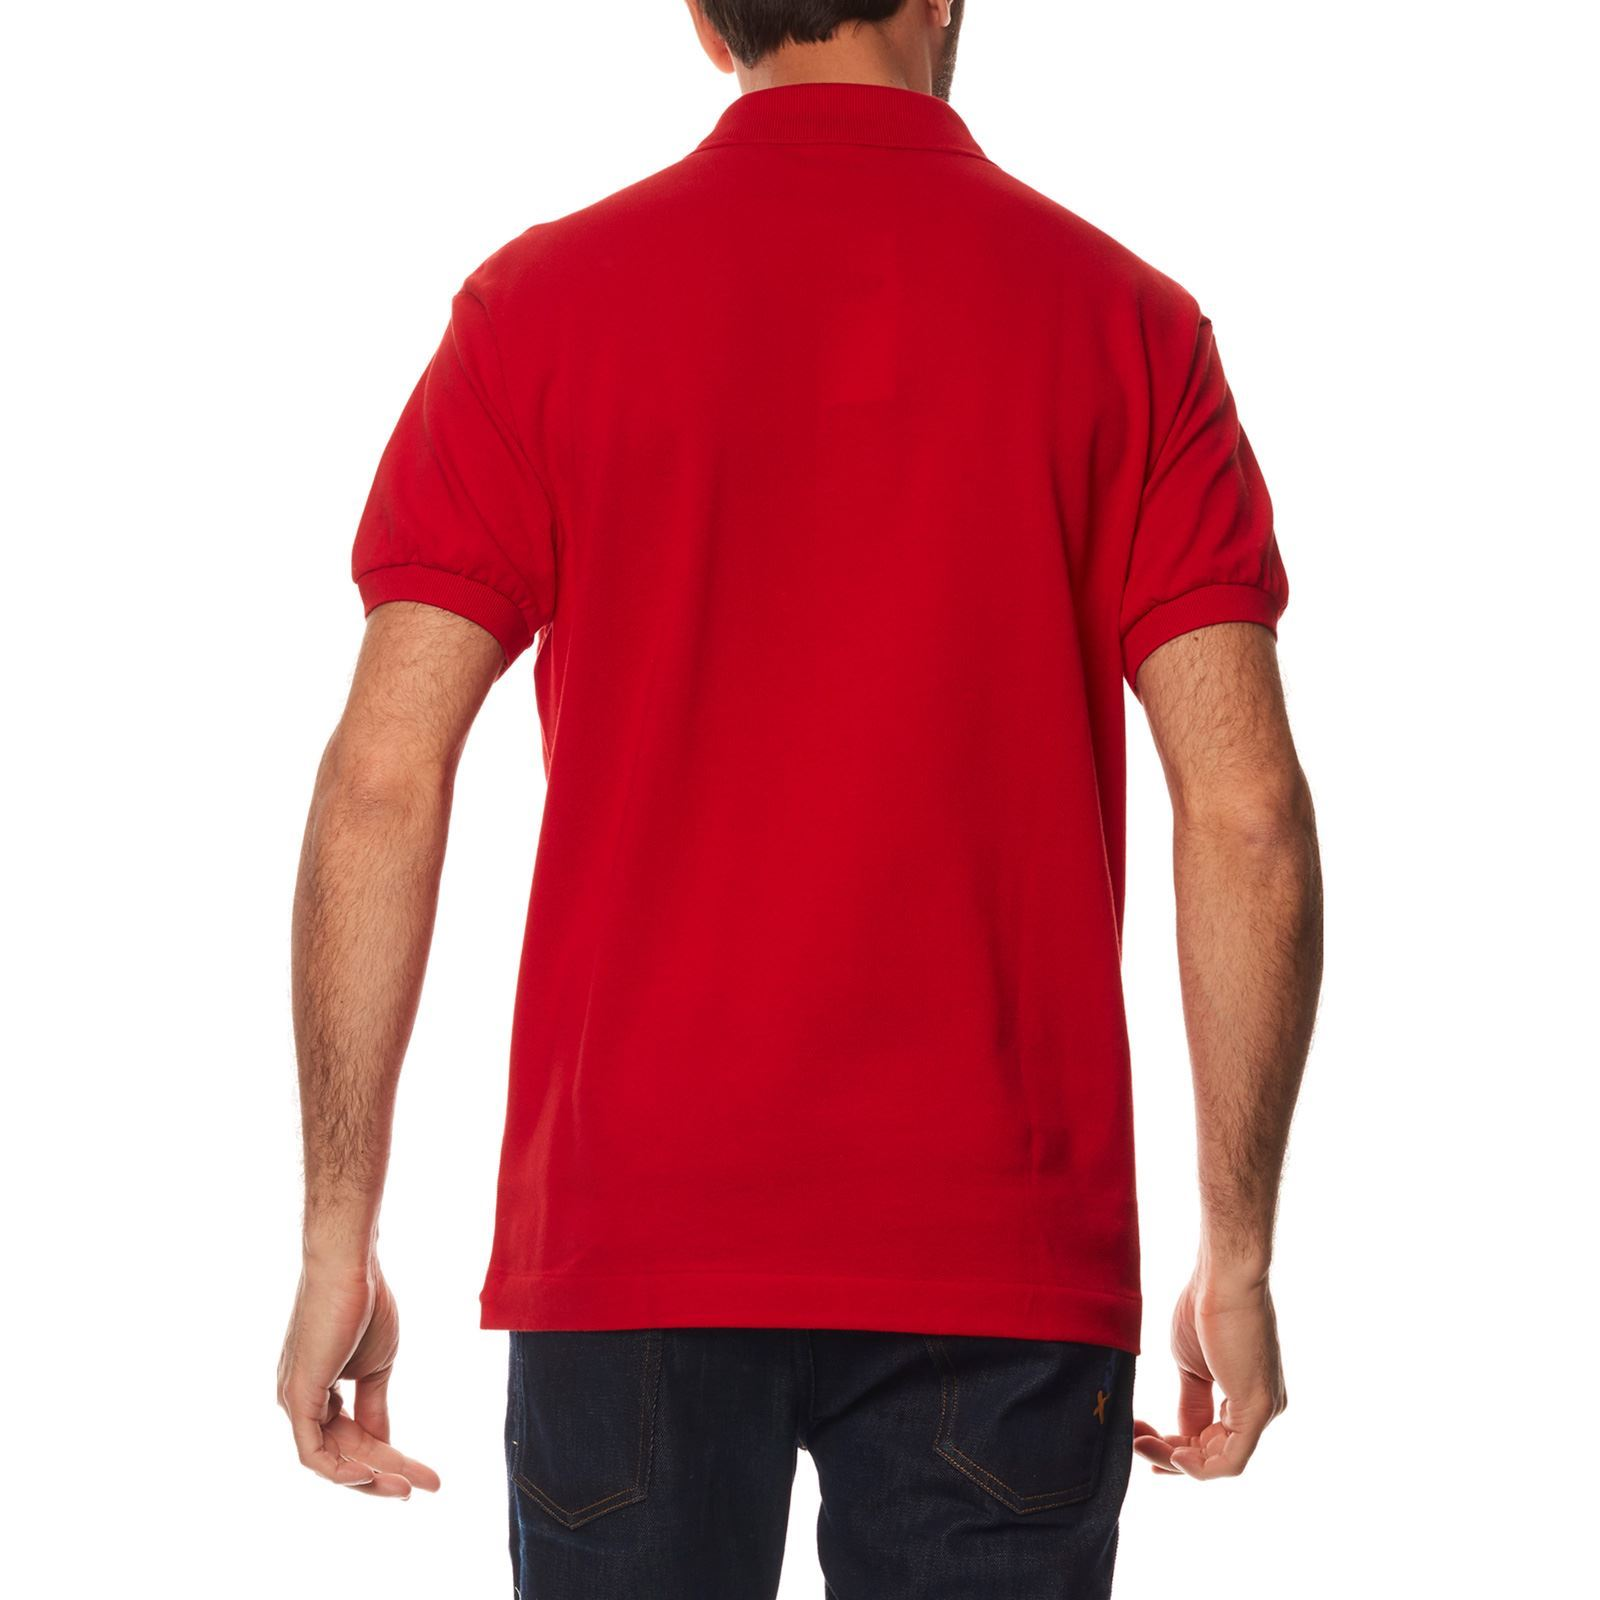 Polo V CourtesRouge Homme Lacoste Manches eWEY9H2ID